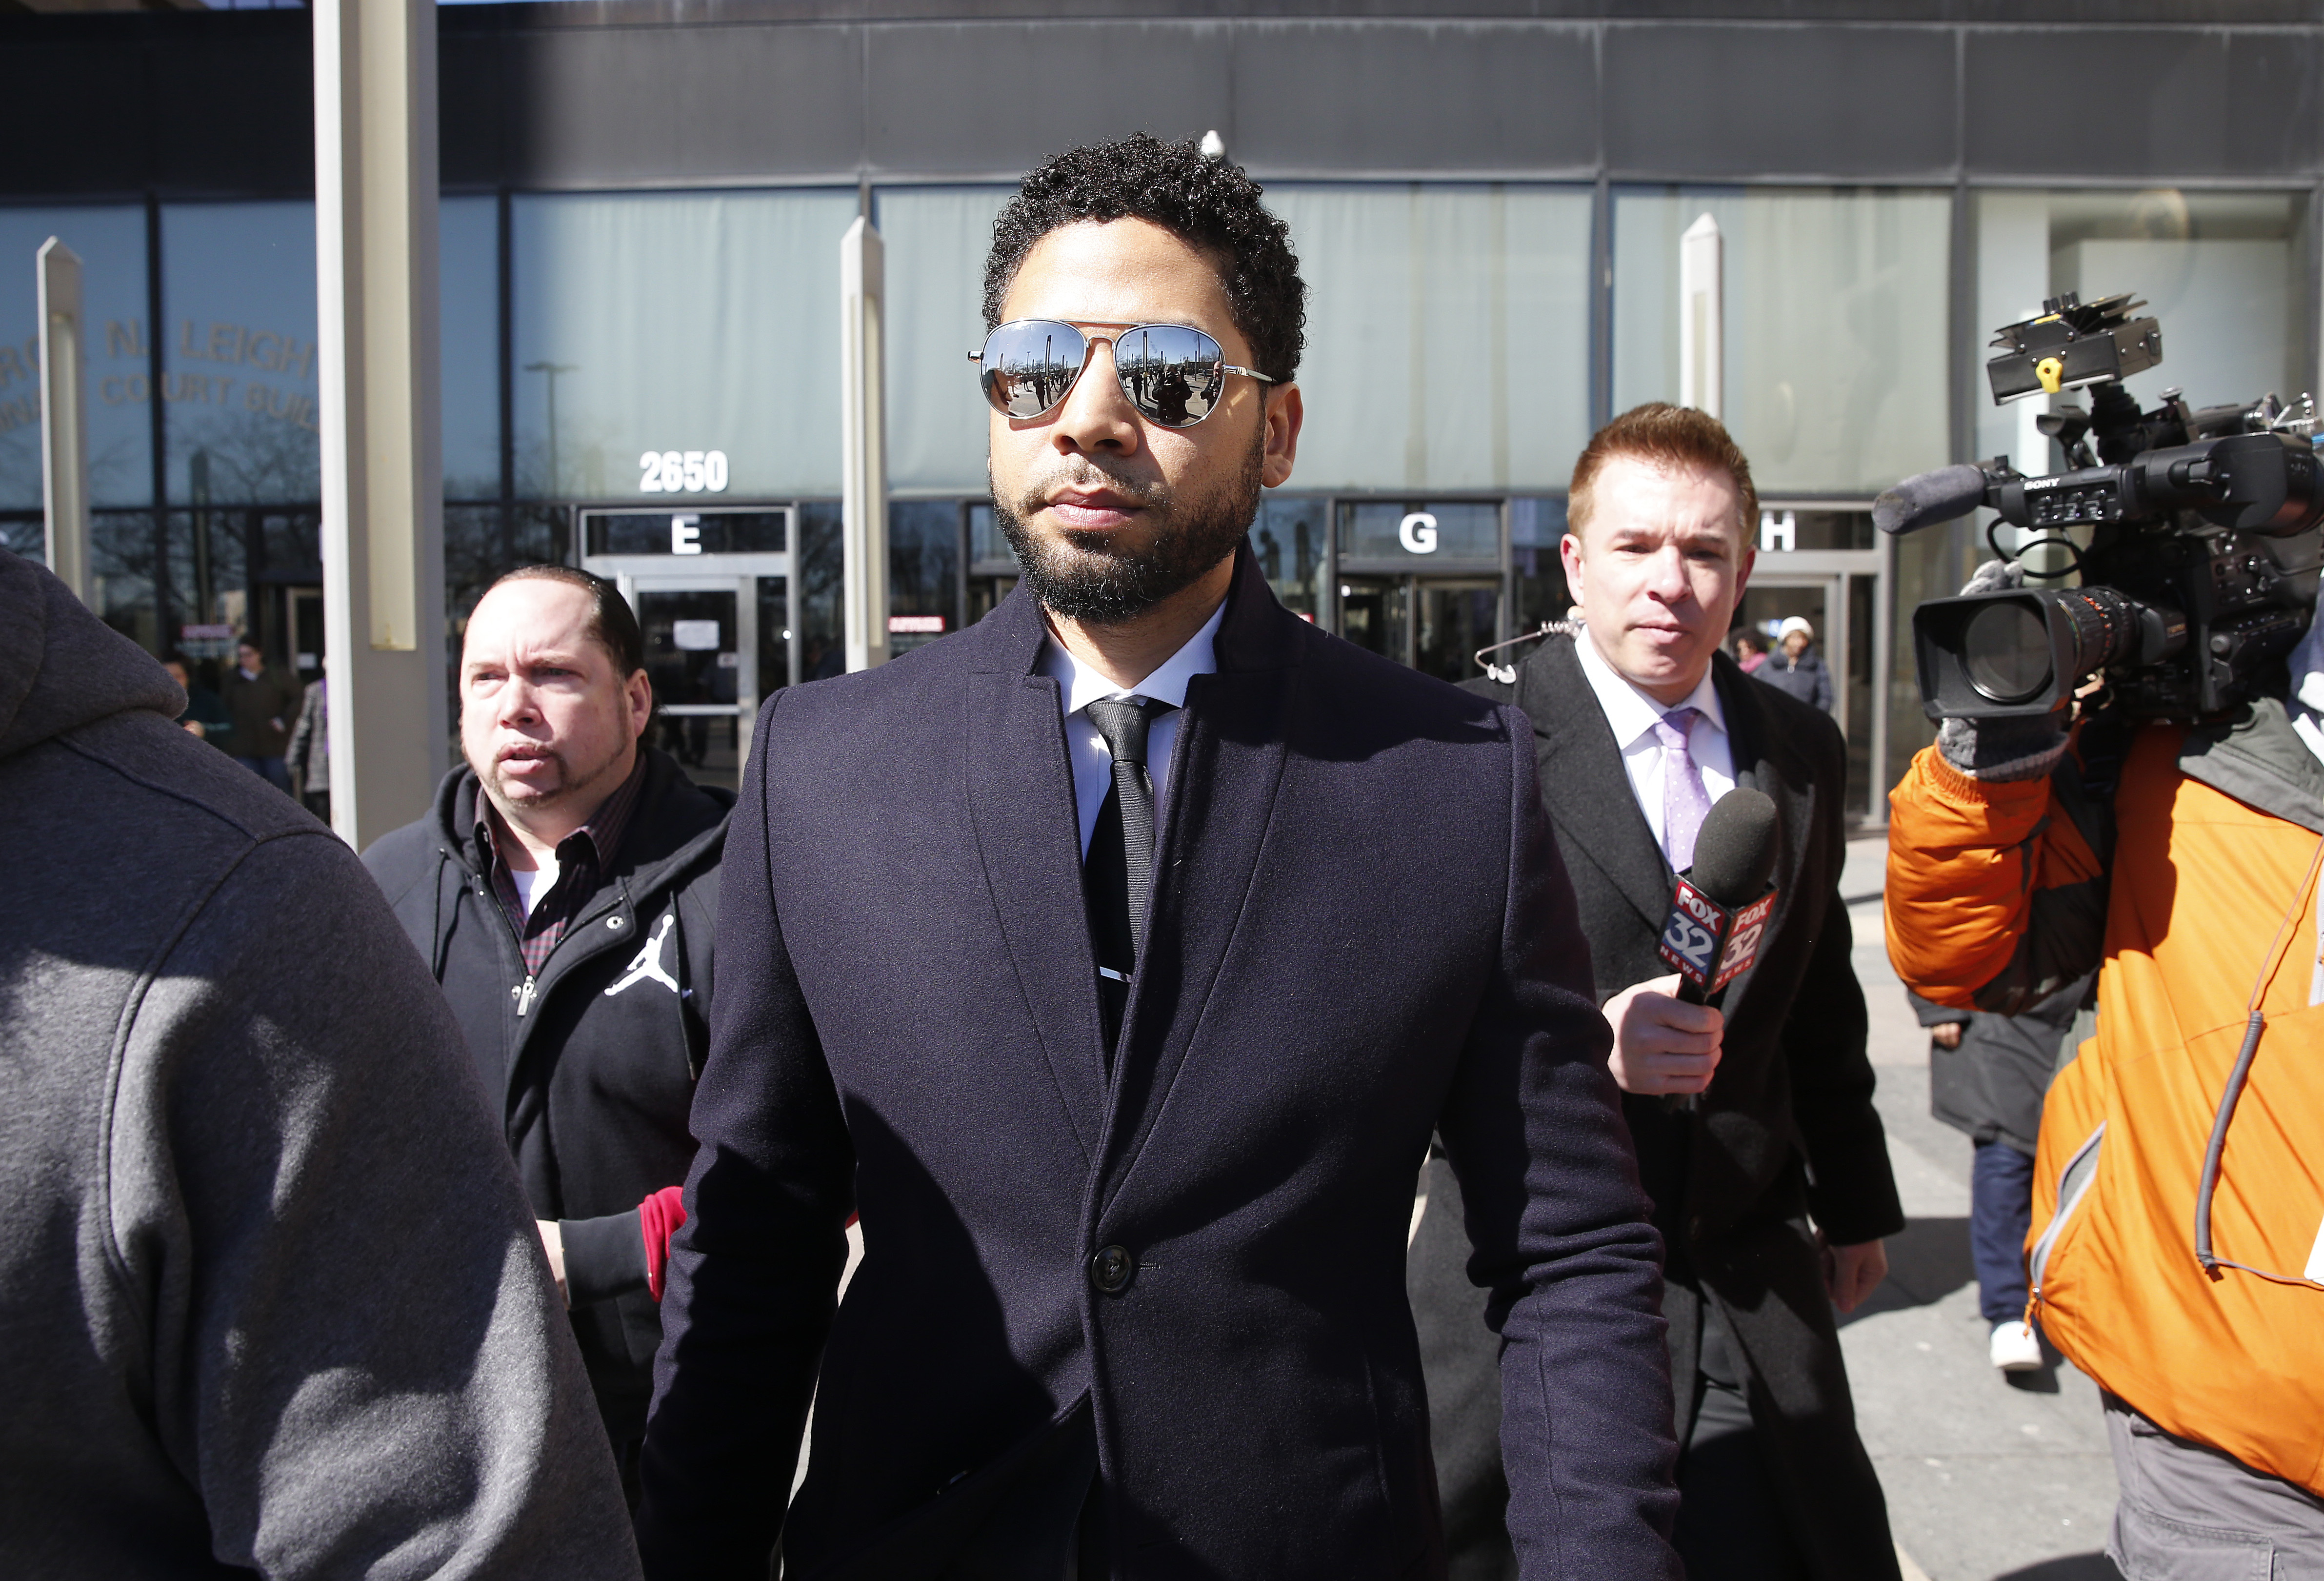 Jussie Smollett Files Counterclaim Against City Of Chicago For 'Malicious Prosecution'